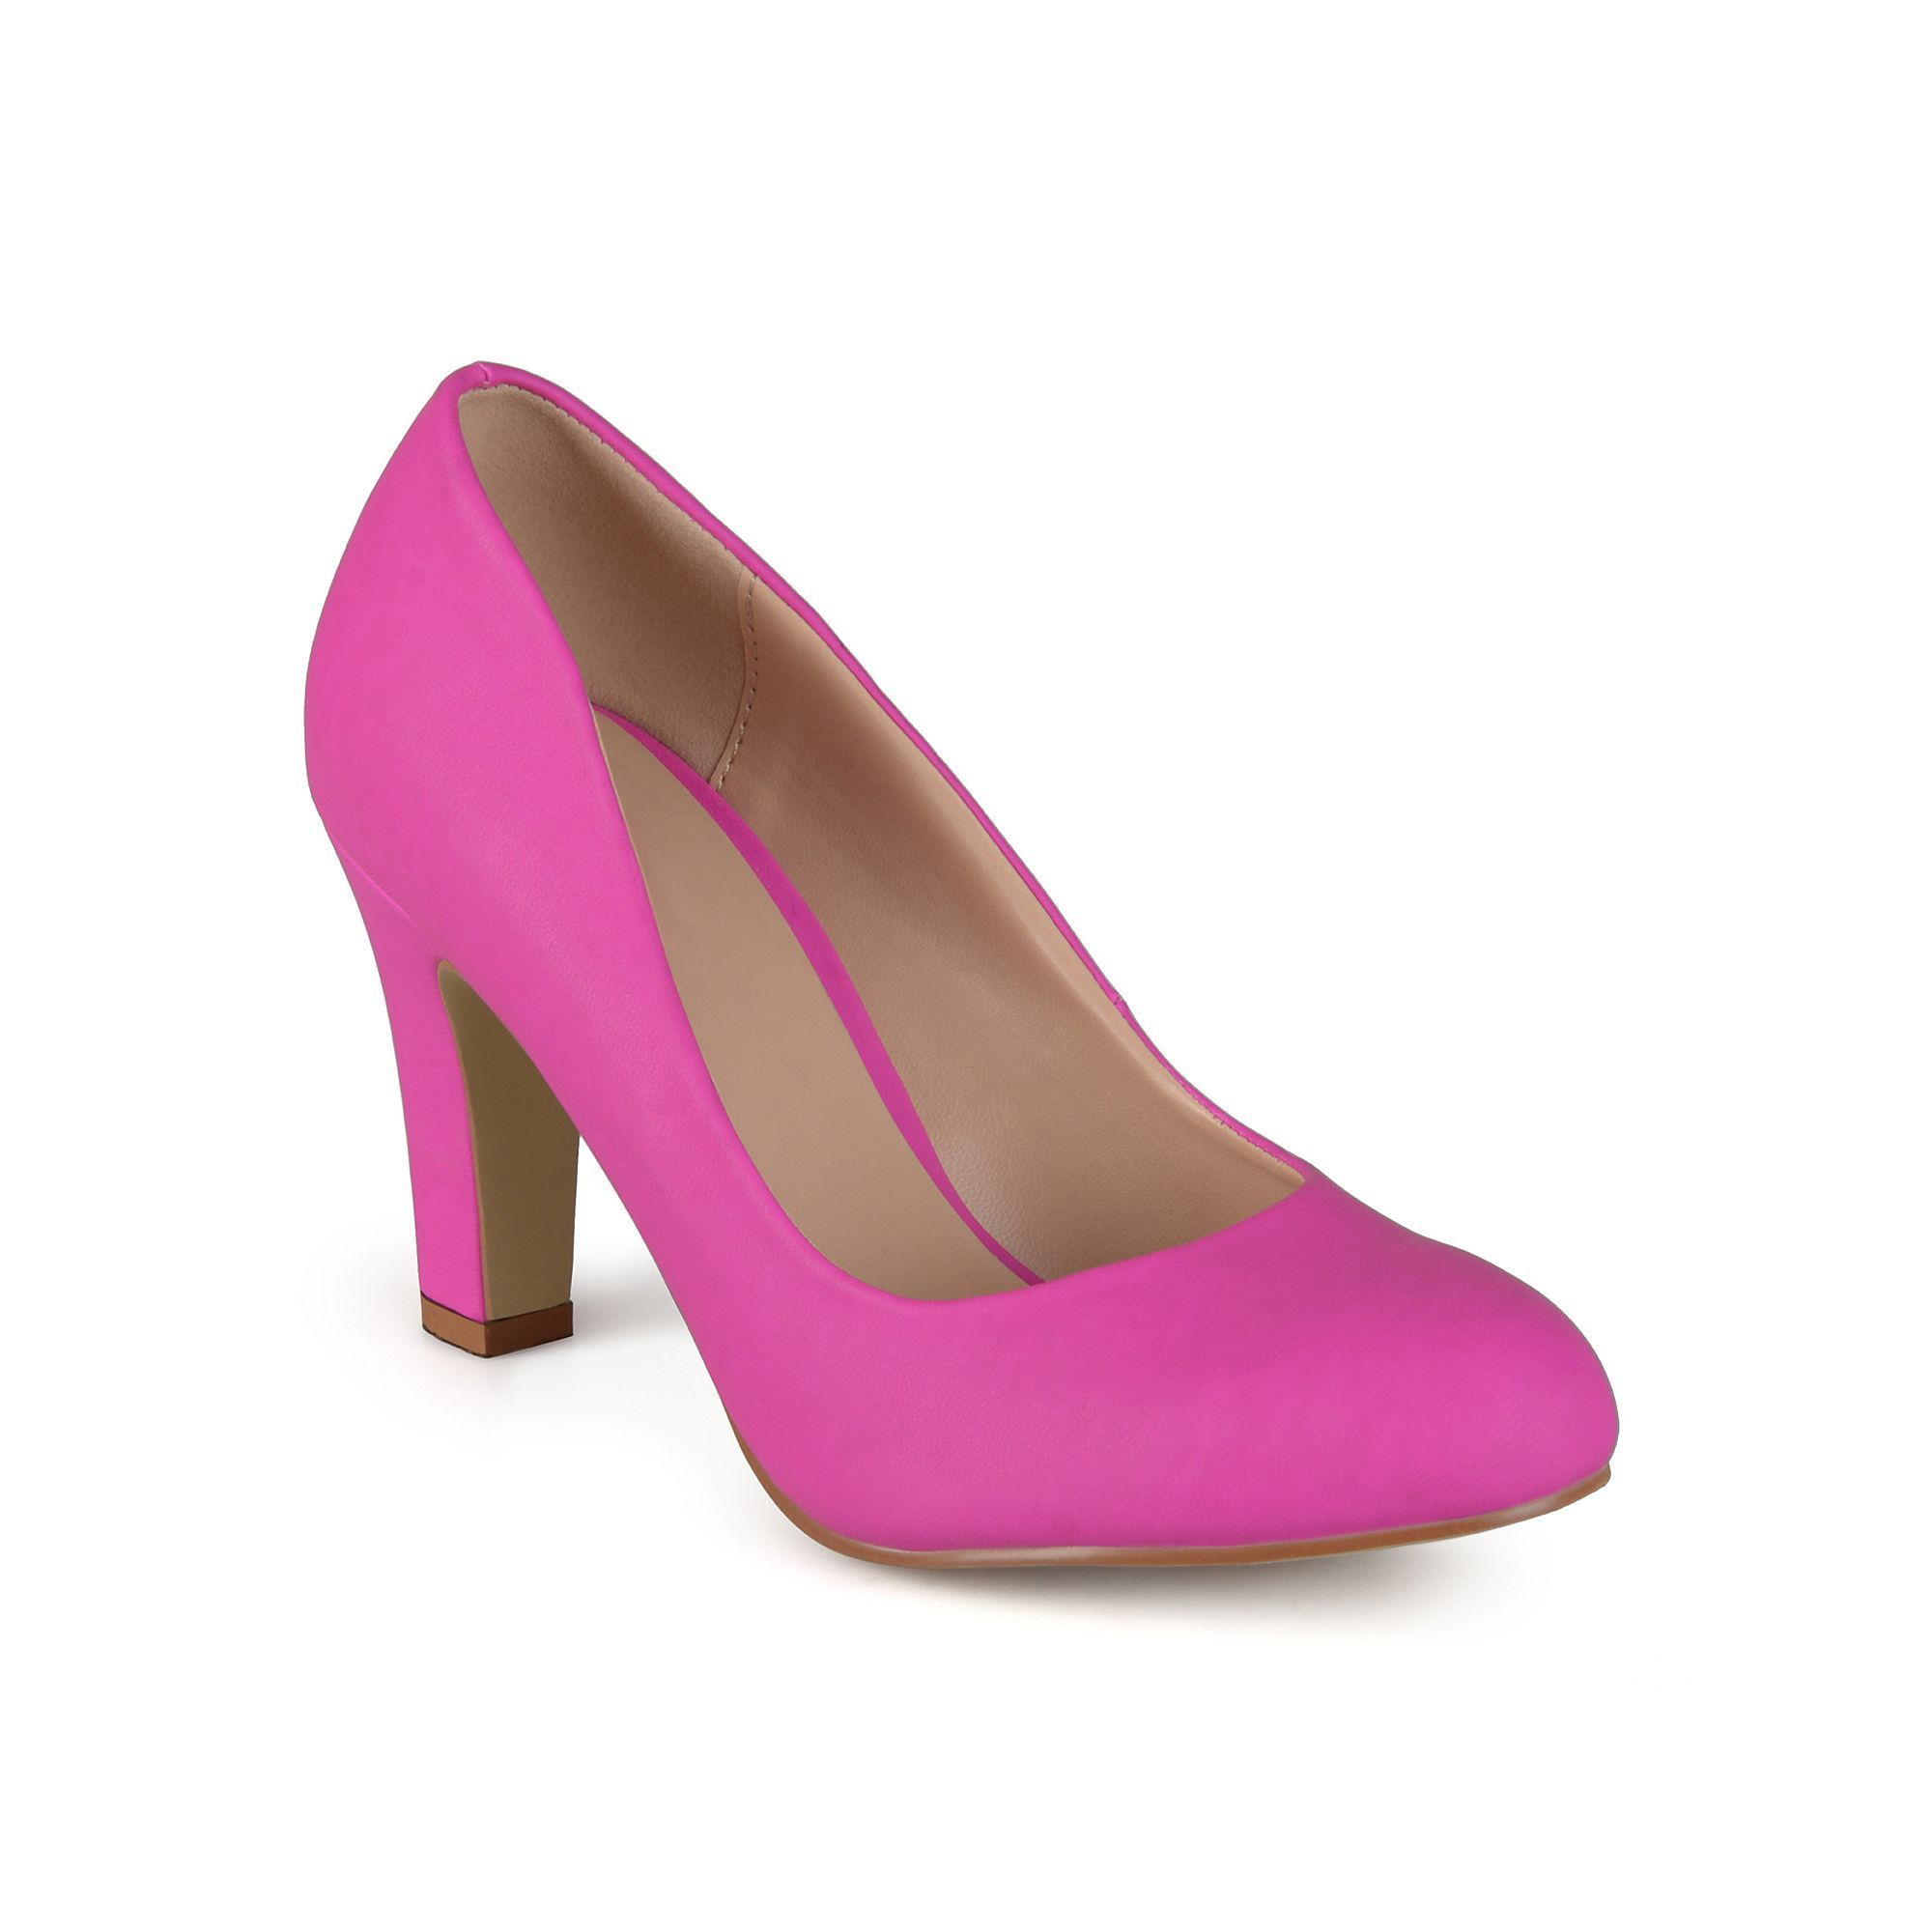 Journee Collection Ice Women's ... High-Heels new arrival for sale 8HR2gKdpU